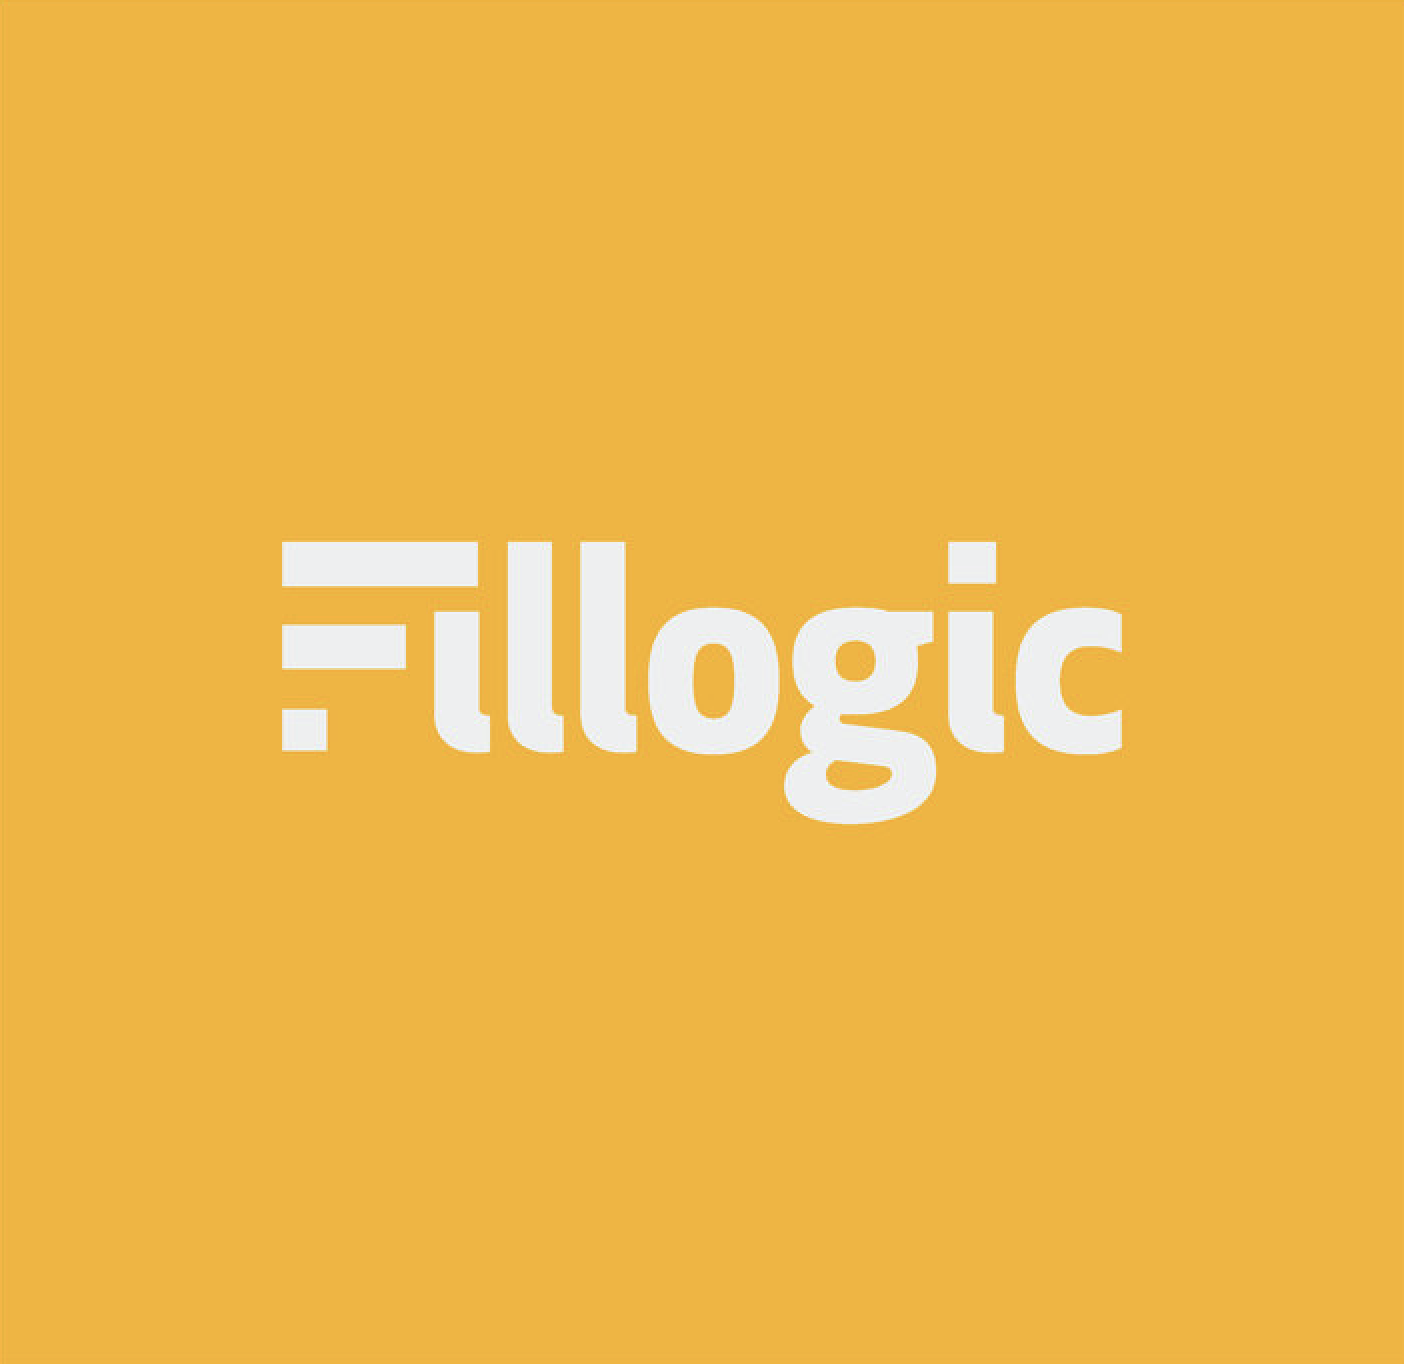 Fillogic Logo